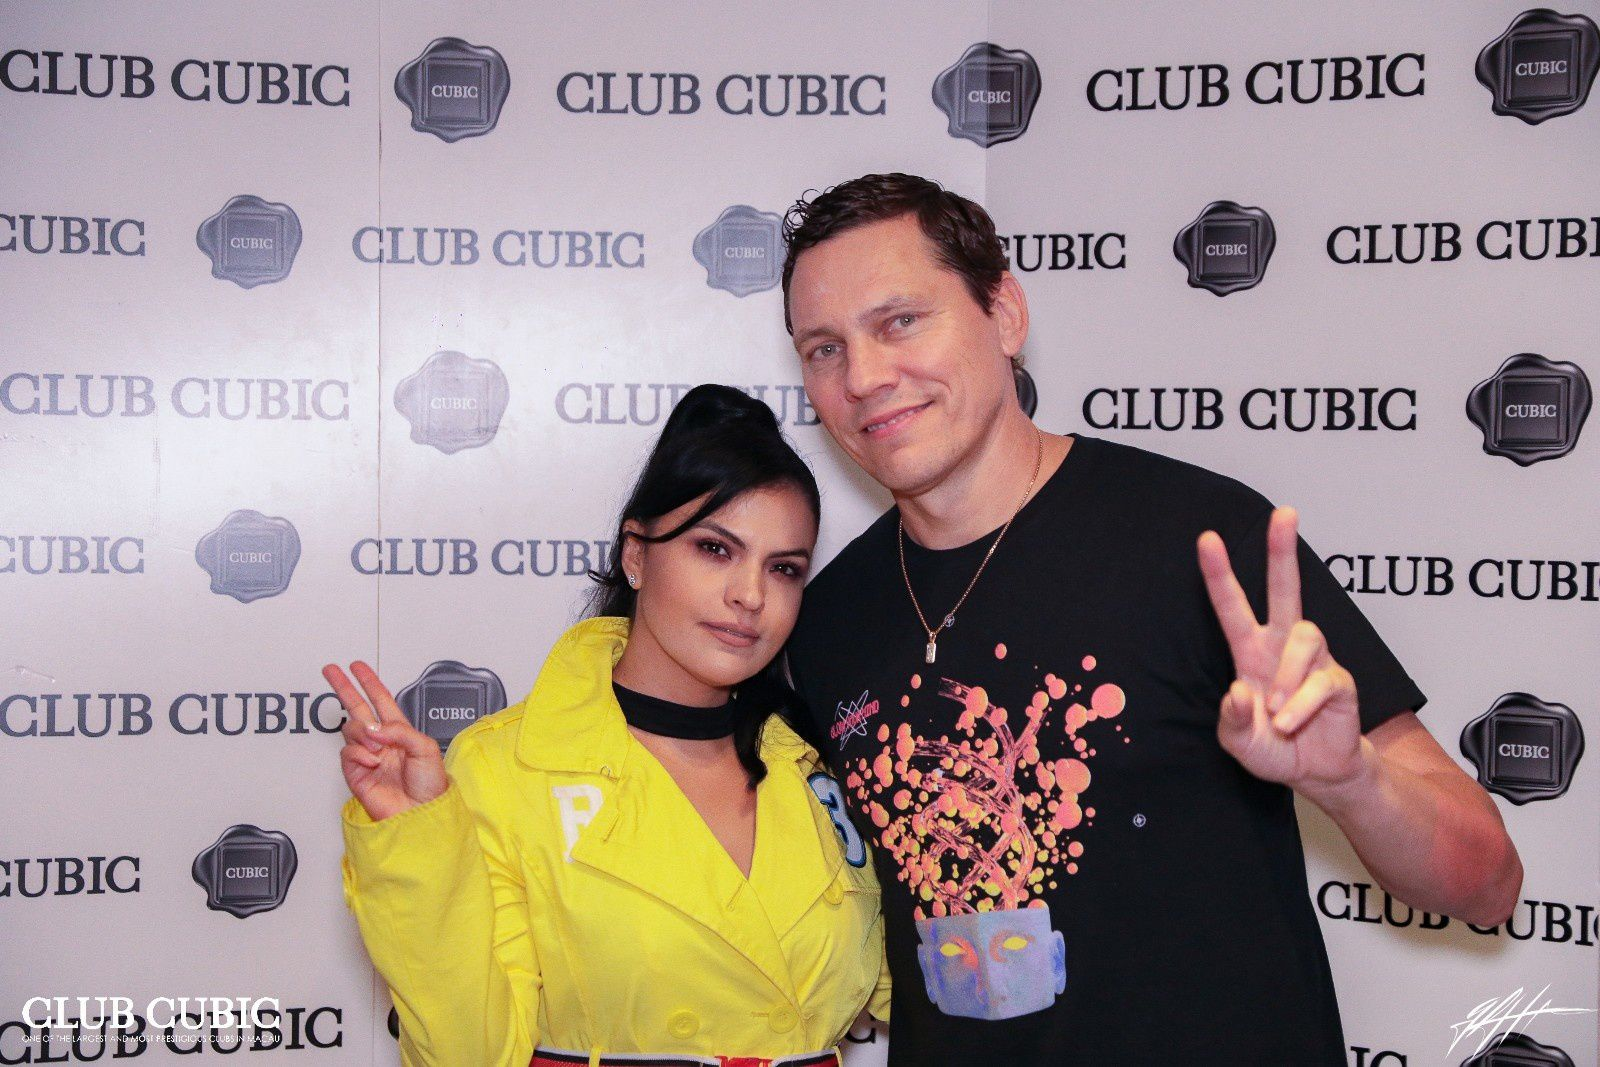 Tiësto photos | Club Cubic | Cotai, Macau - April 13, 2019